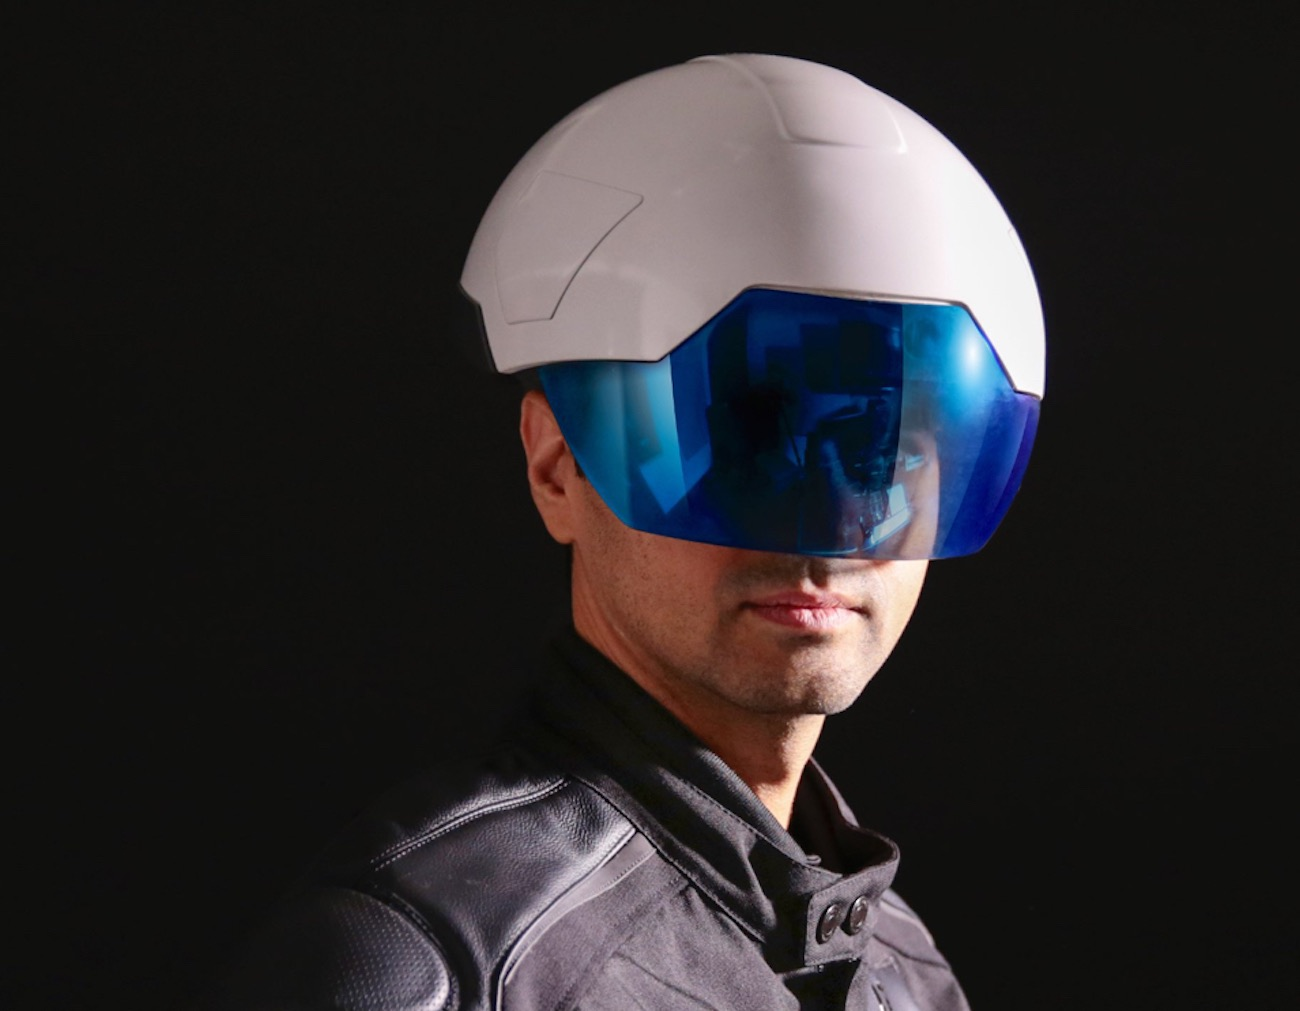 Daqri Smart Helmet – The Wearable Human Machine Interface